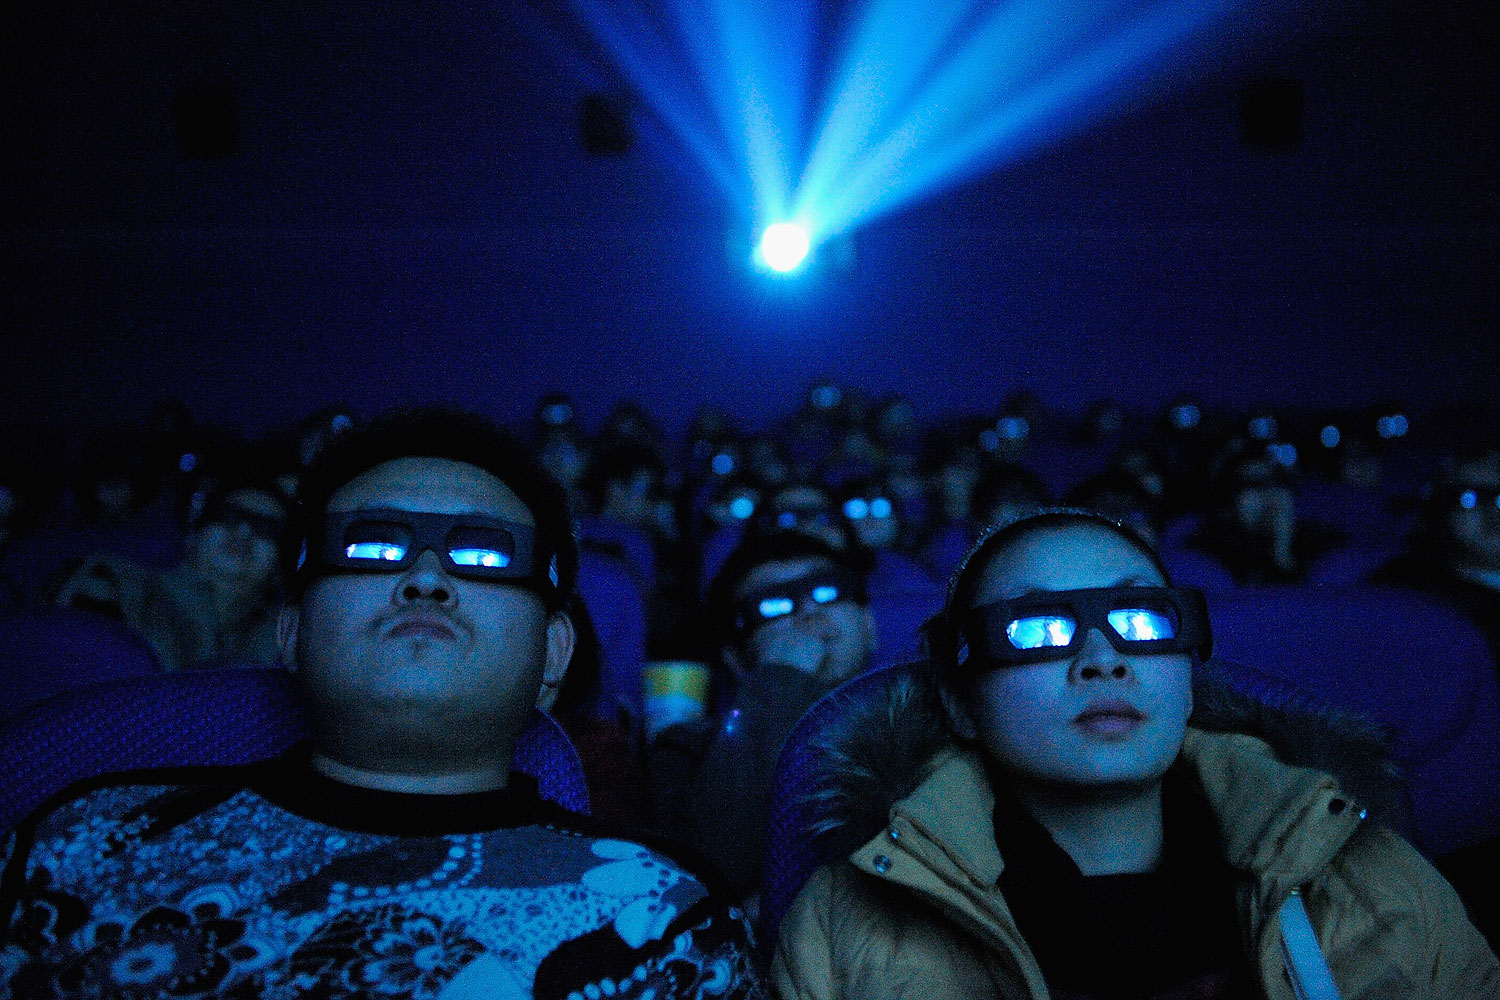 A Chinese cinema audience watches a movie through 3D glasses